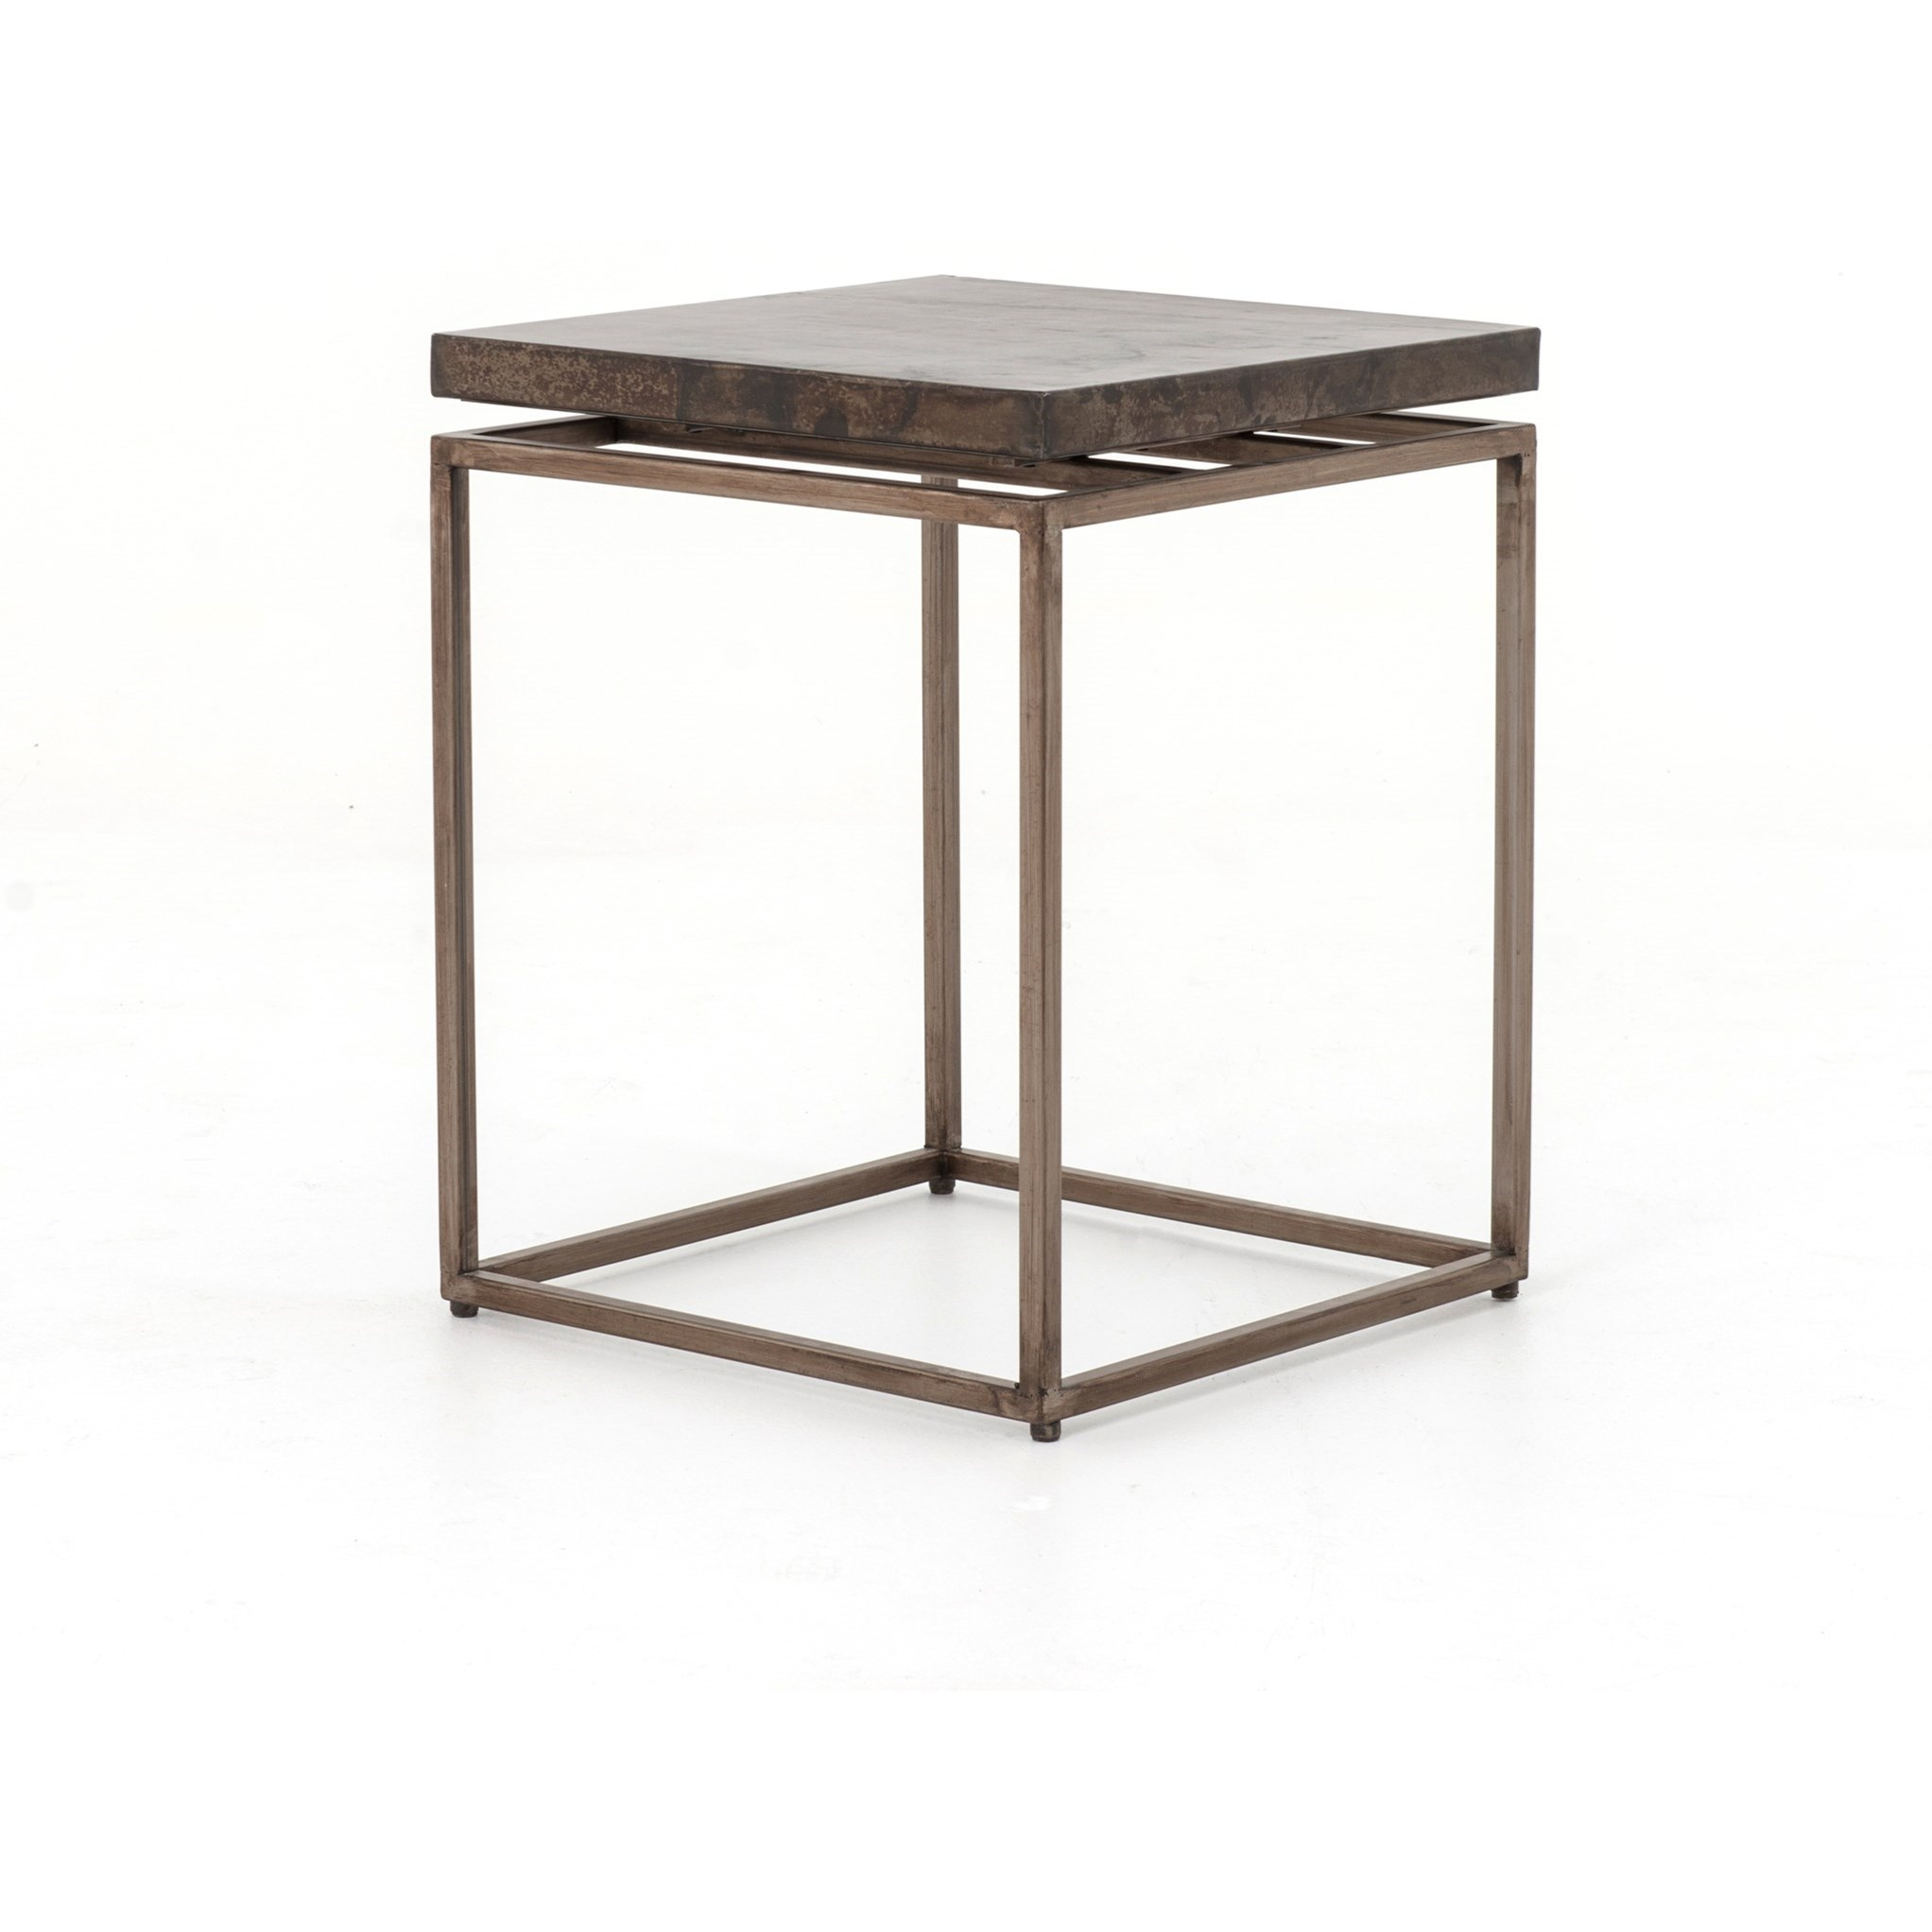 Four Hands Wesson Roman Side Table - Item Number: UWES-009